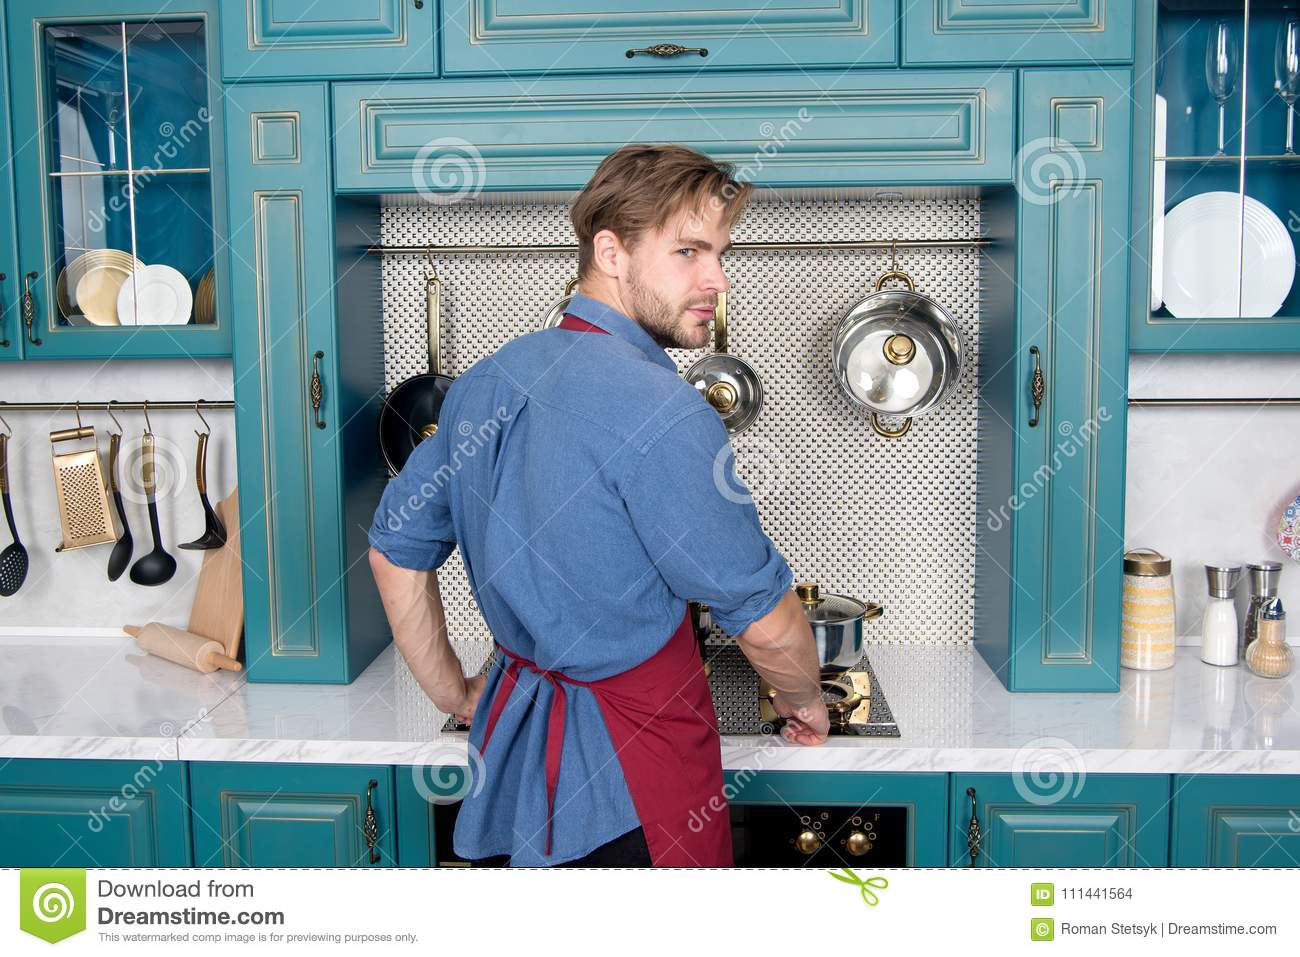 Child Safety In Kitchen Near Stove Stock Photo - Image of